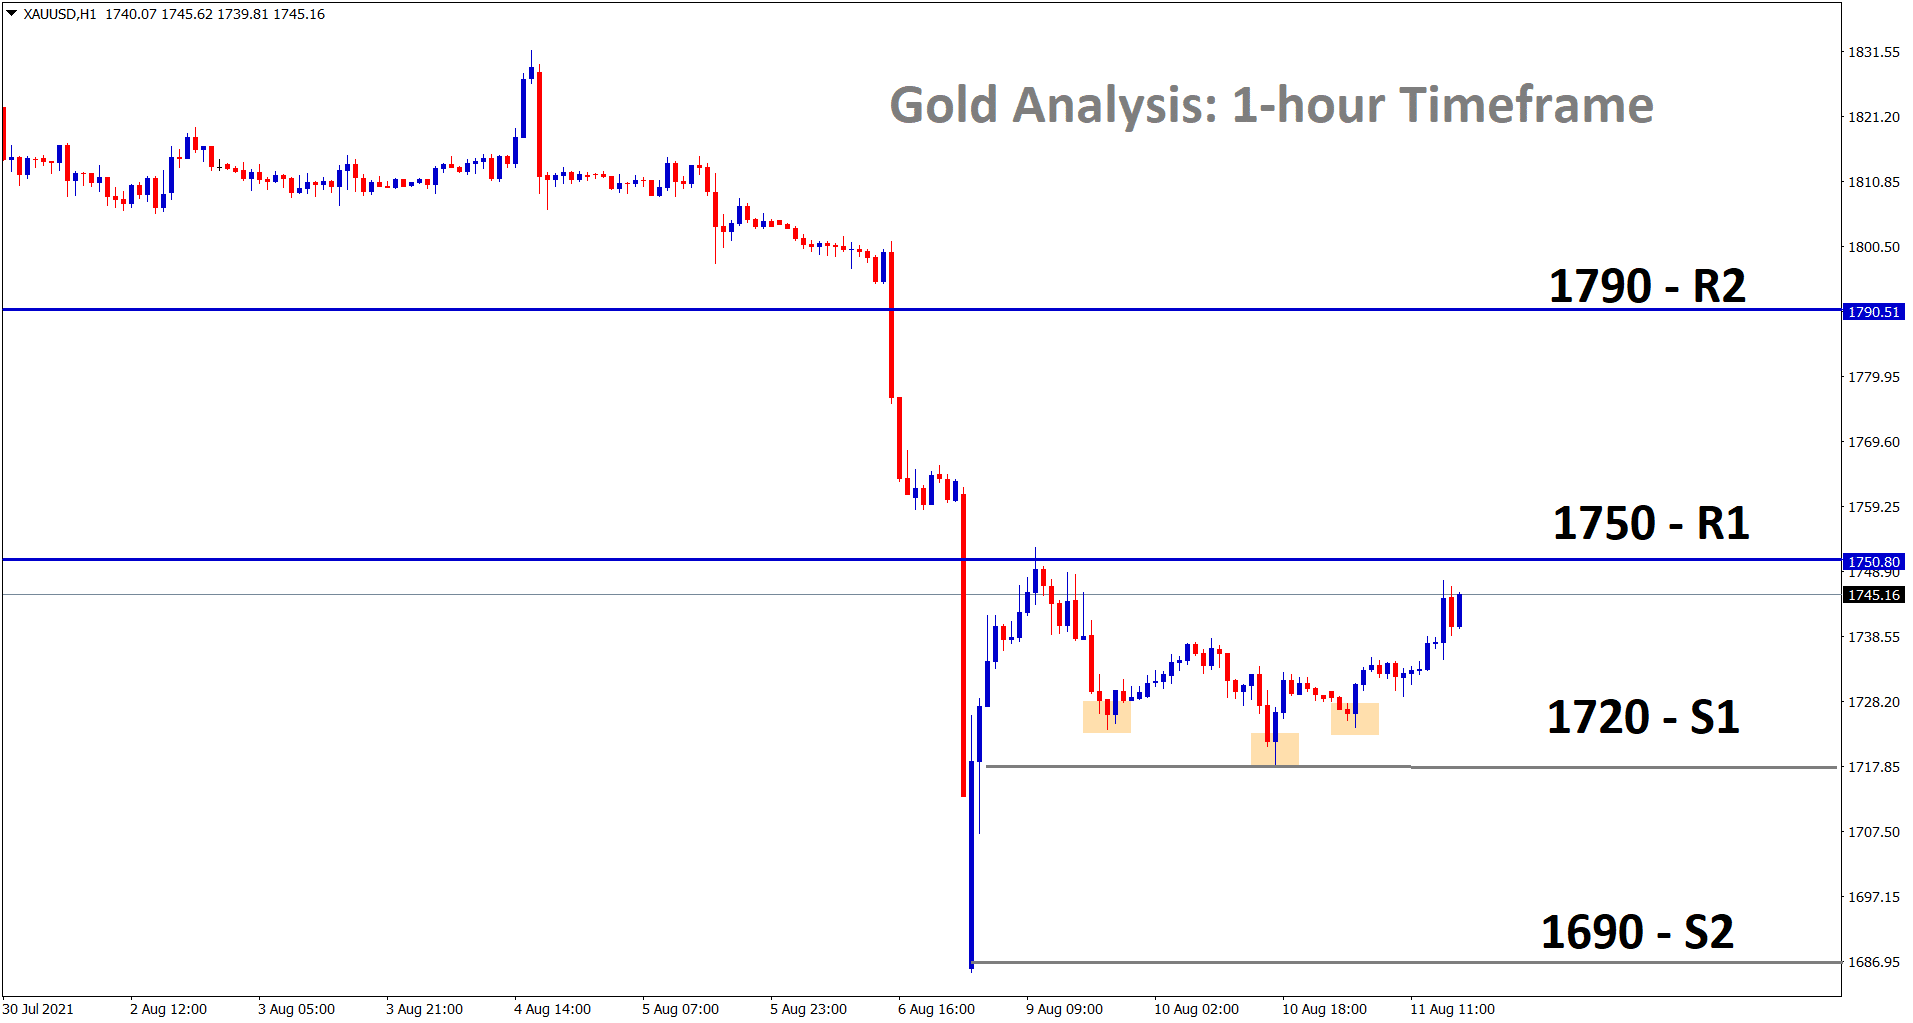 Gold has formed the minor inverse head and shoulder pattern in the 1 hour timeframe market is going to reach the resistance 1750